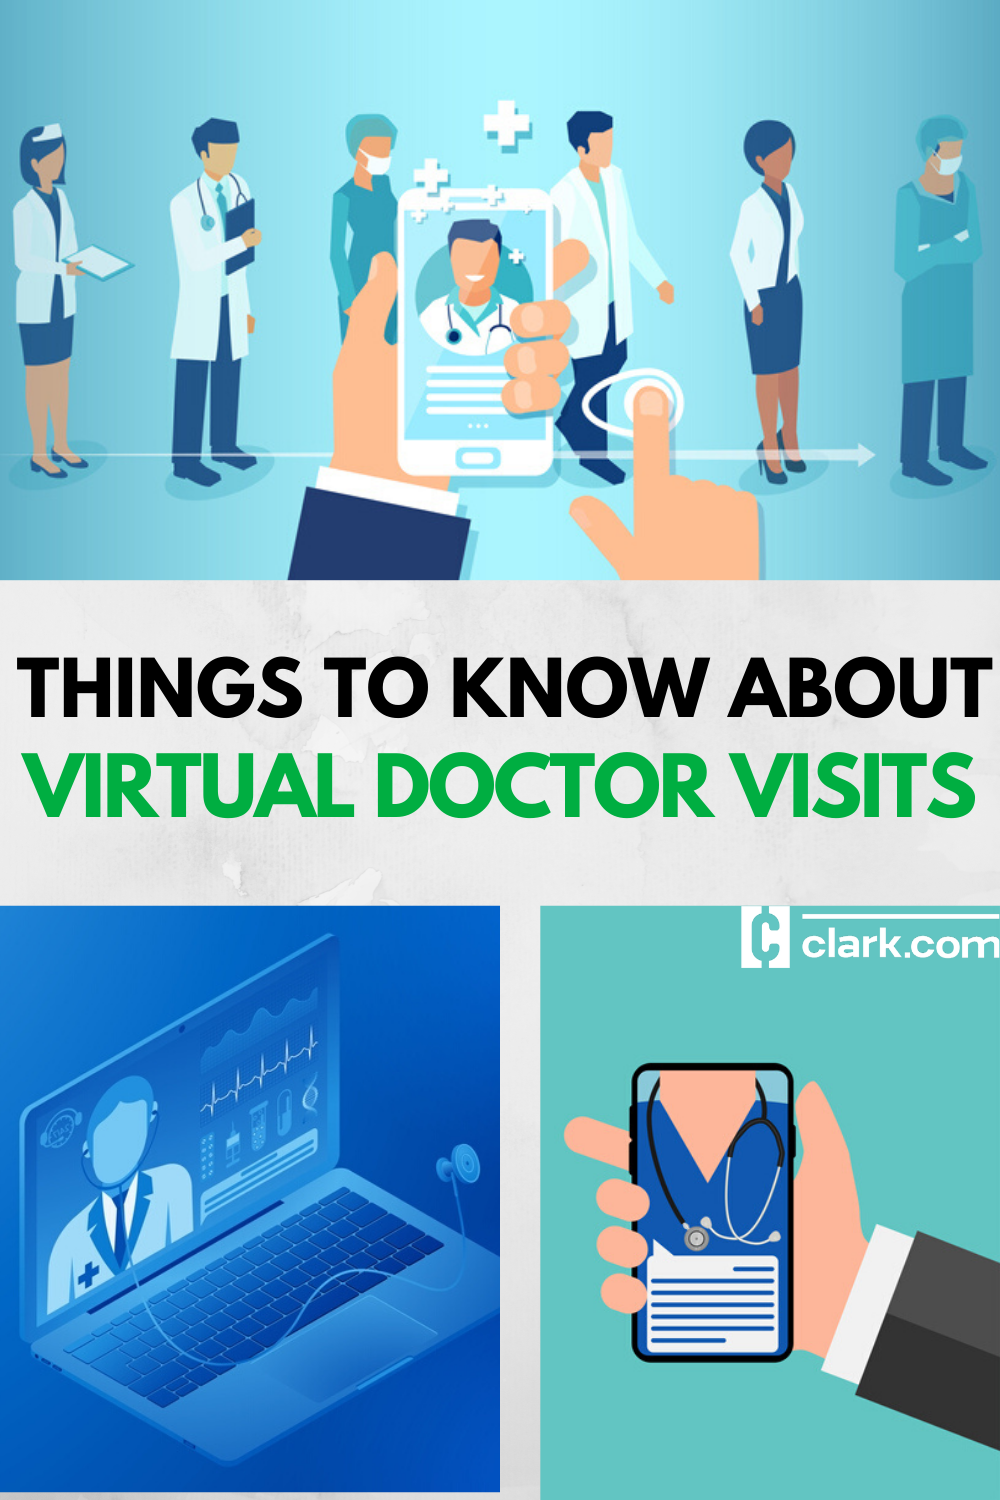 Telemedicine Virtual Doctor Visit How To In 2020 Telemedicine Virtual Doctor Doctor Visit